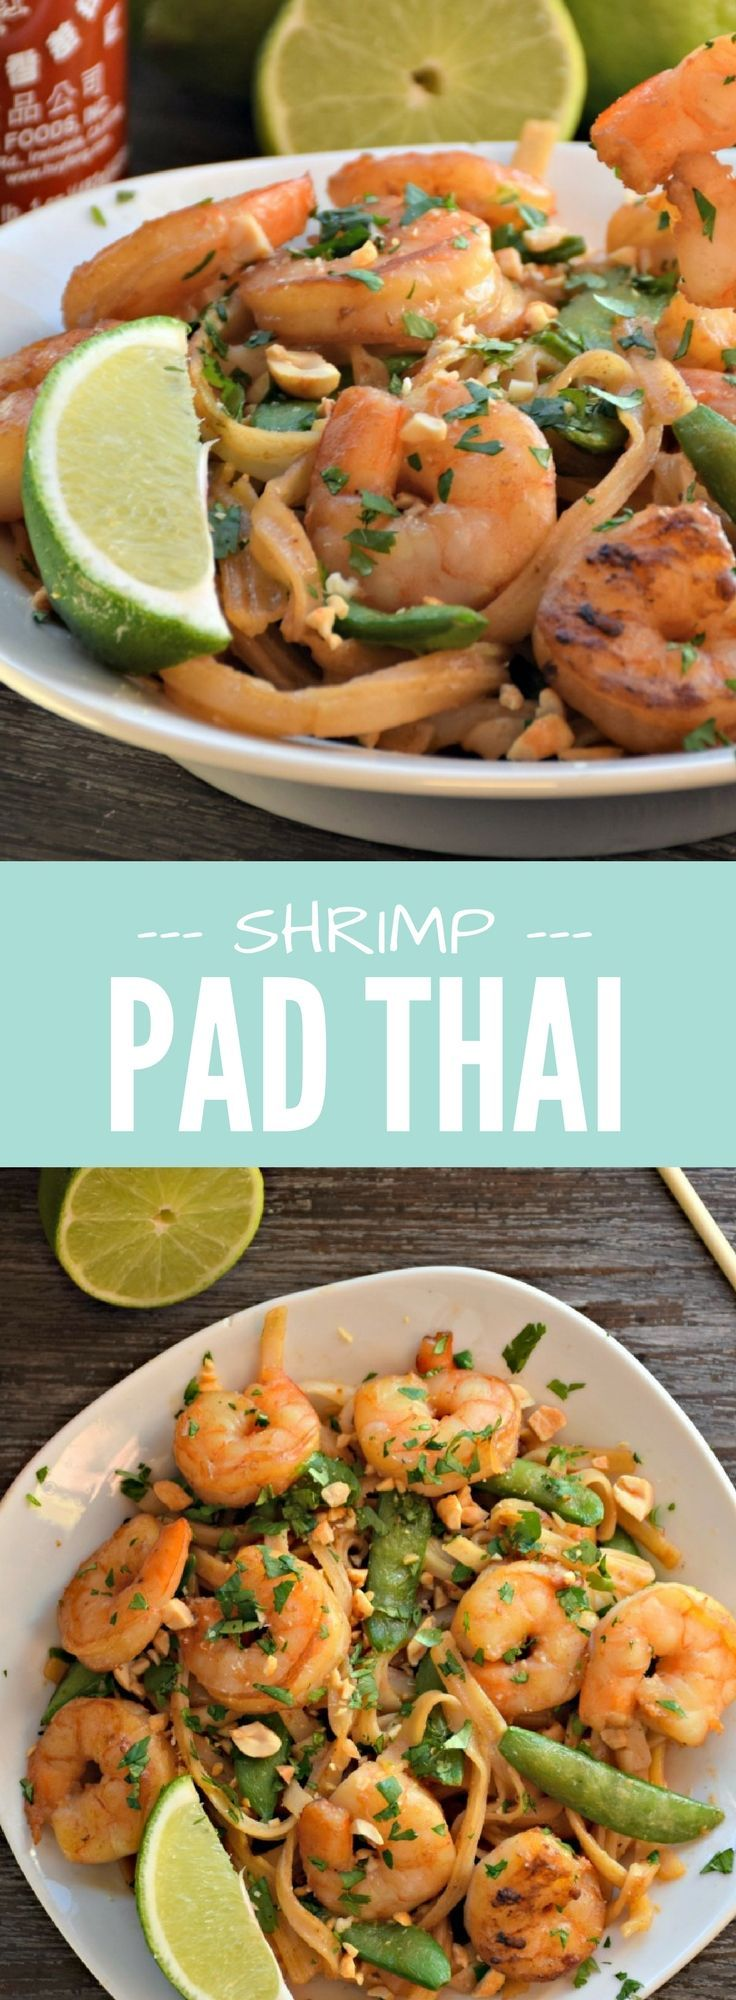 Wake up your taste buds tonight with this flavorful, 20 Minute Shrimp Pad Thai! Based with traditionalandnaturally gluten free rice noodles, this dish is filled with complex yet comforting flavors.